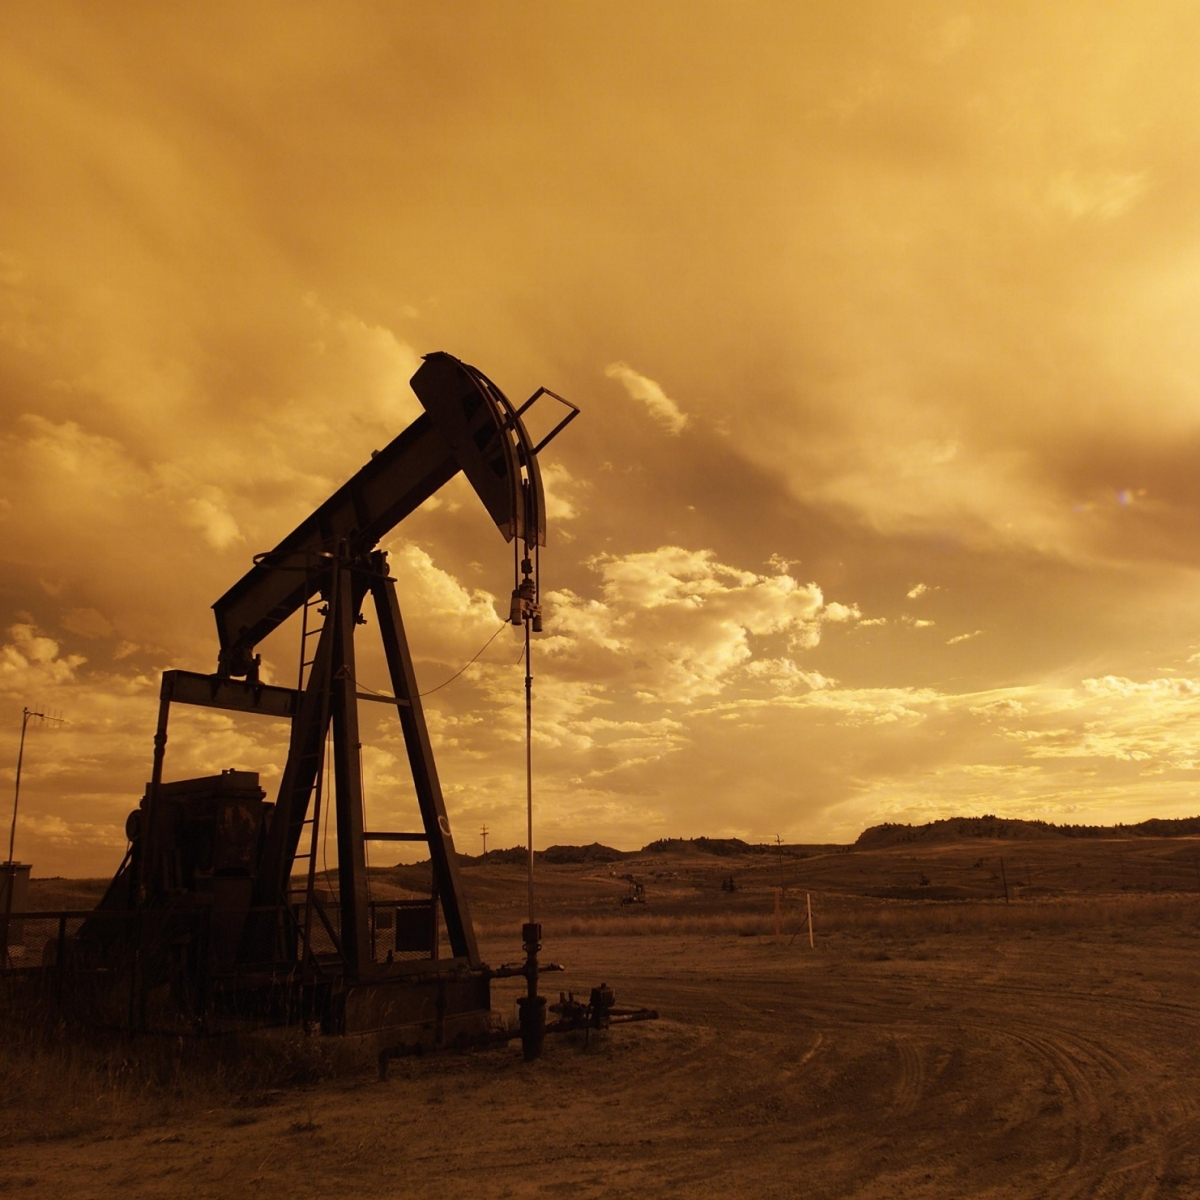 A 100% natural oil well